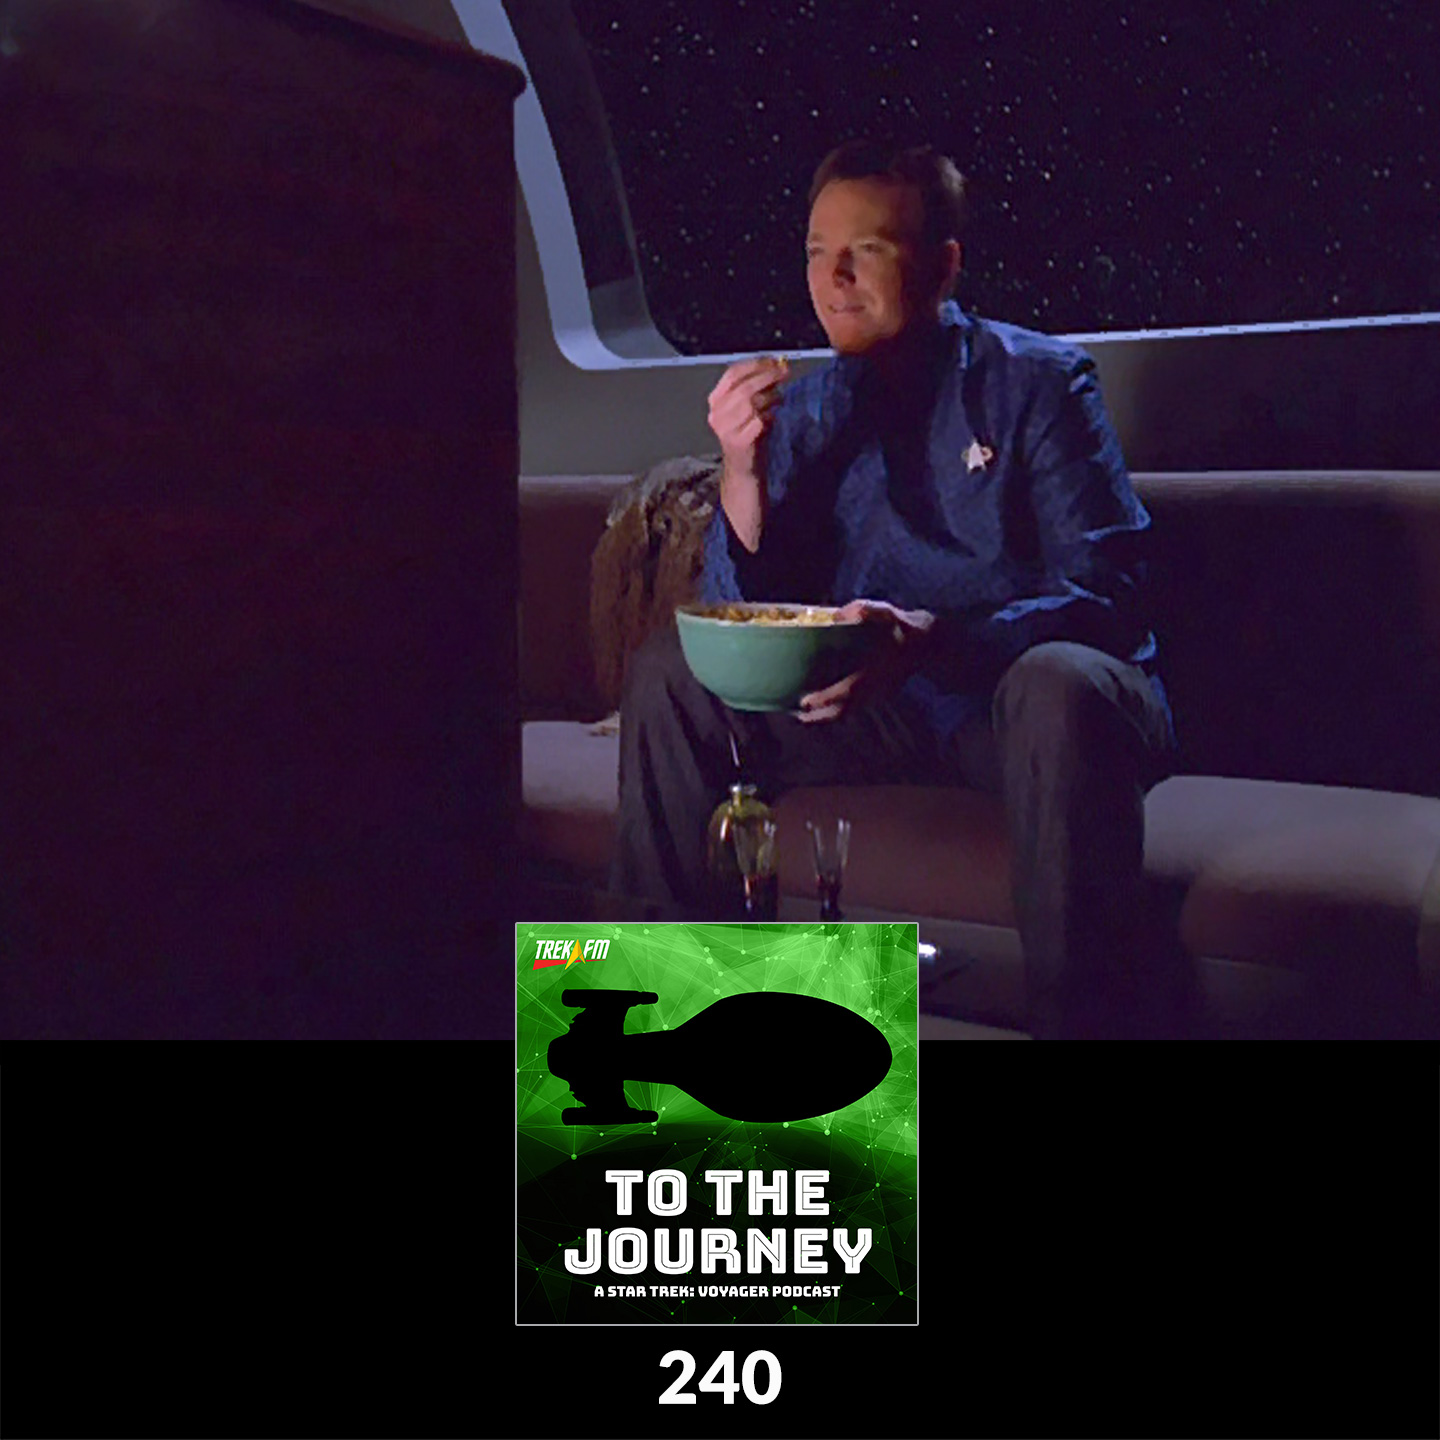 To The Journey 240: Green Shag Carpet - What Voyager Means to Us.